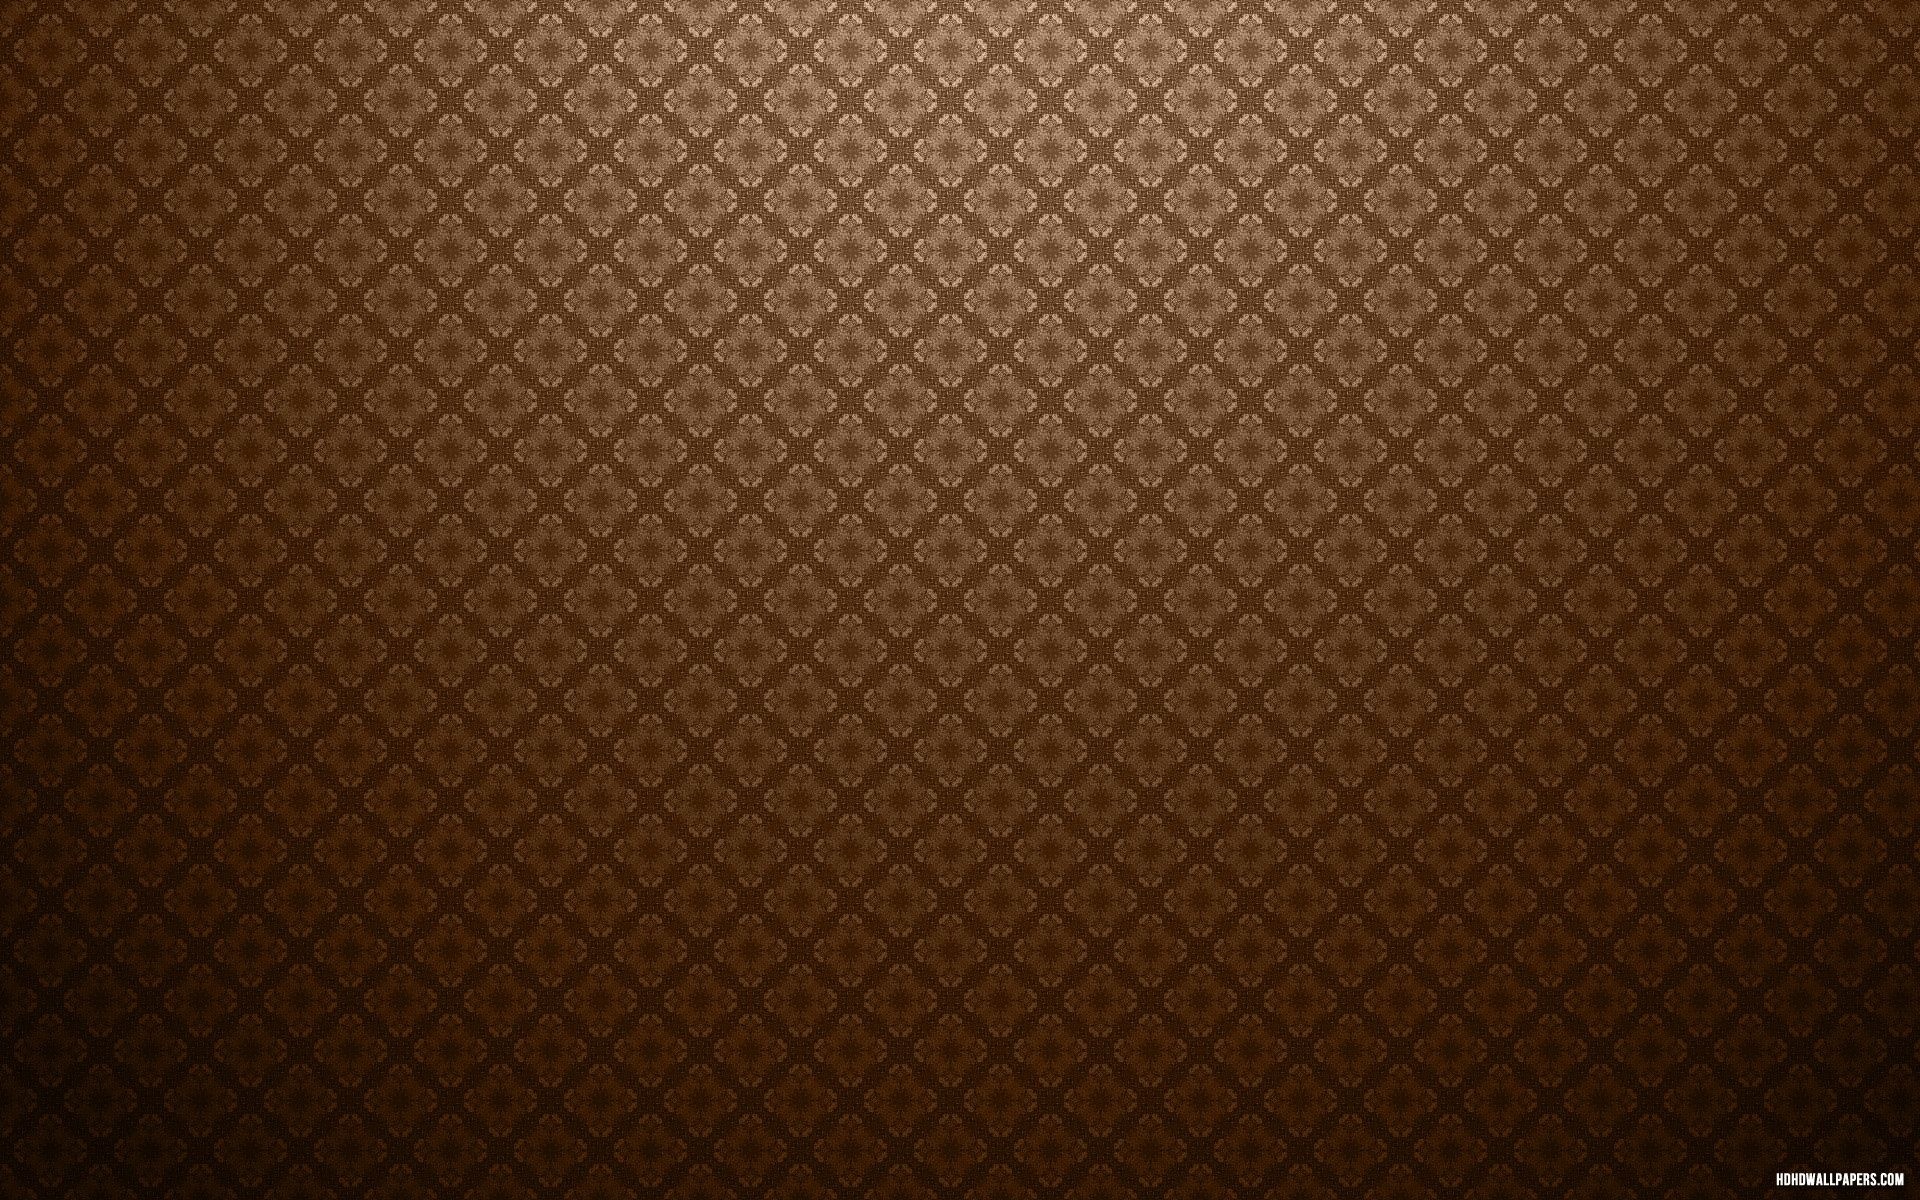 Brown Wallpaper Brown Designs Wallpapers HD Wallpapers Download Free Images Wallpaper [1000image.com]